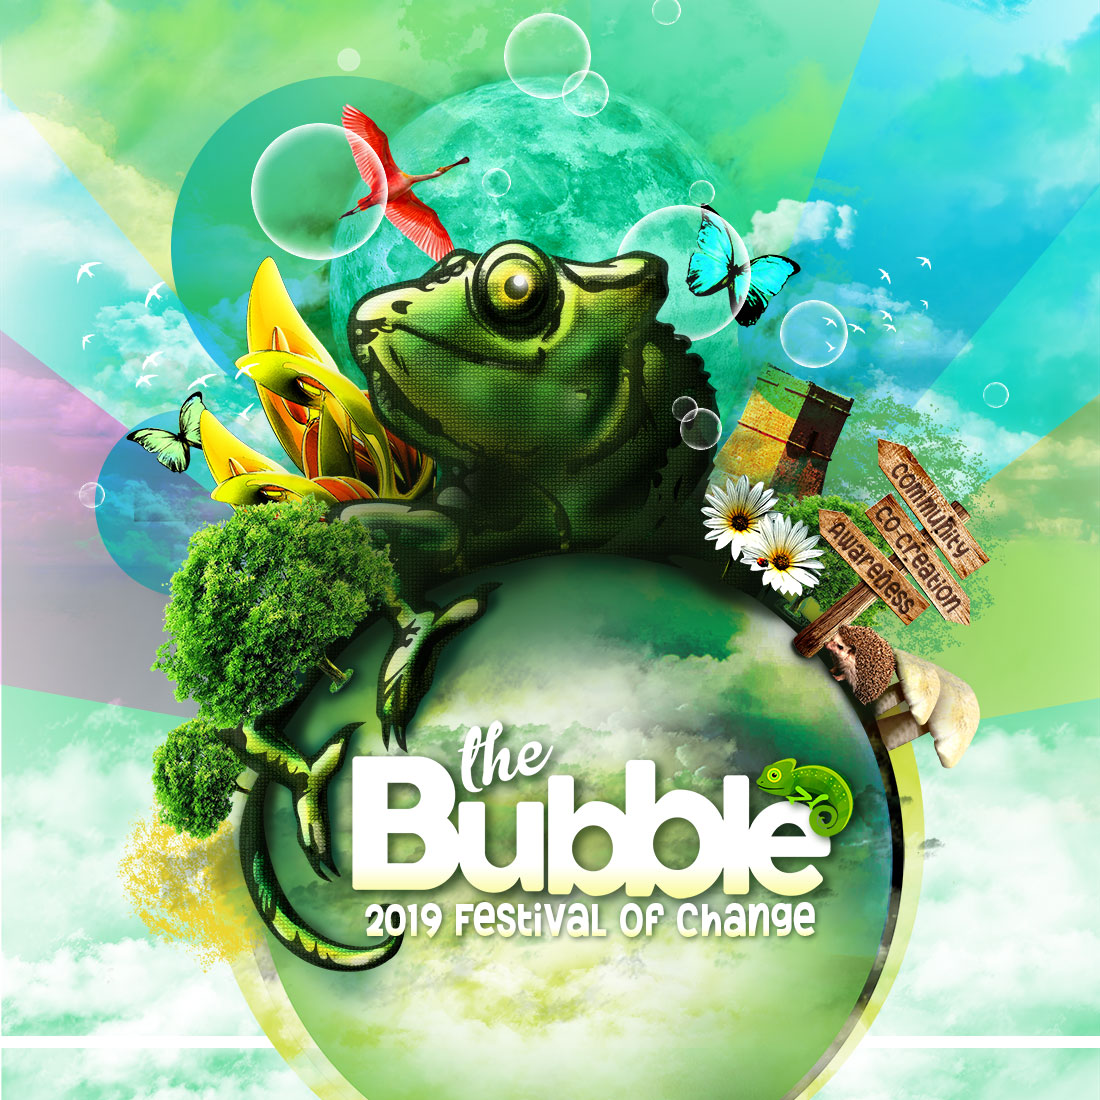 The Bubble 2019 - A Festival of Change